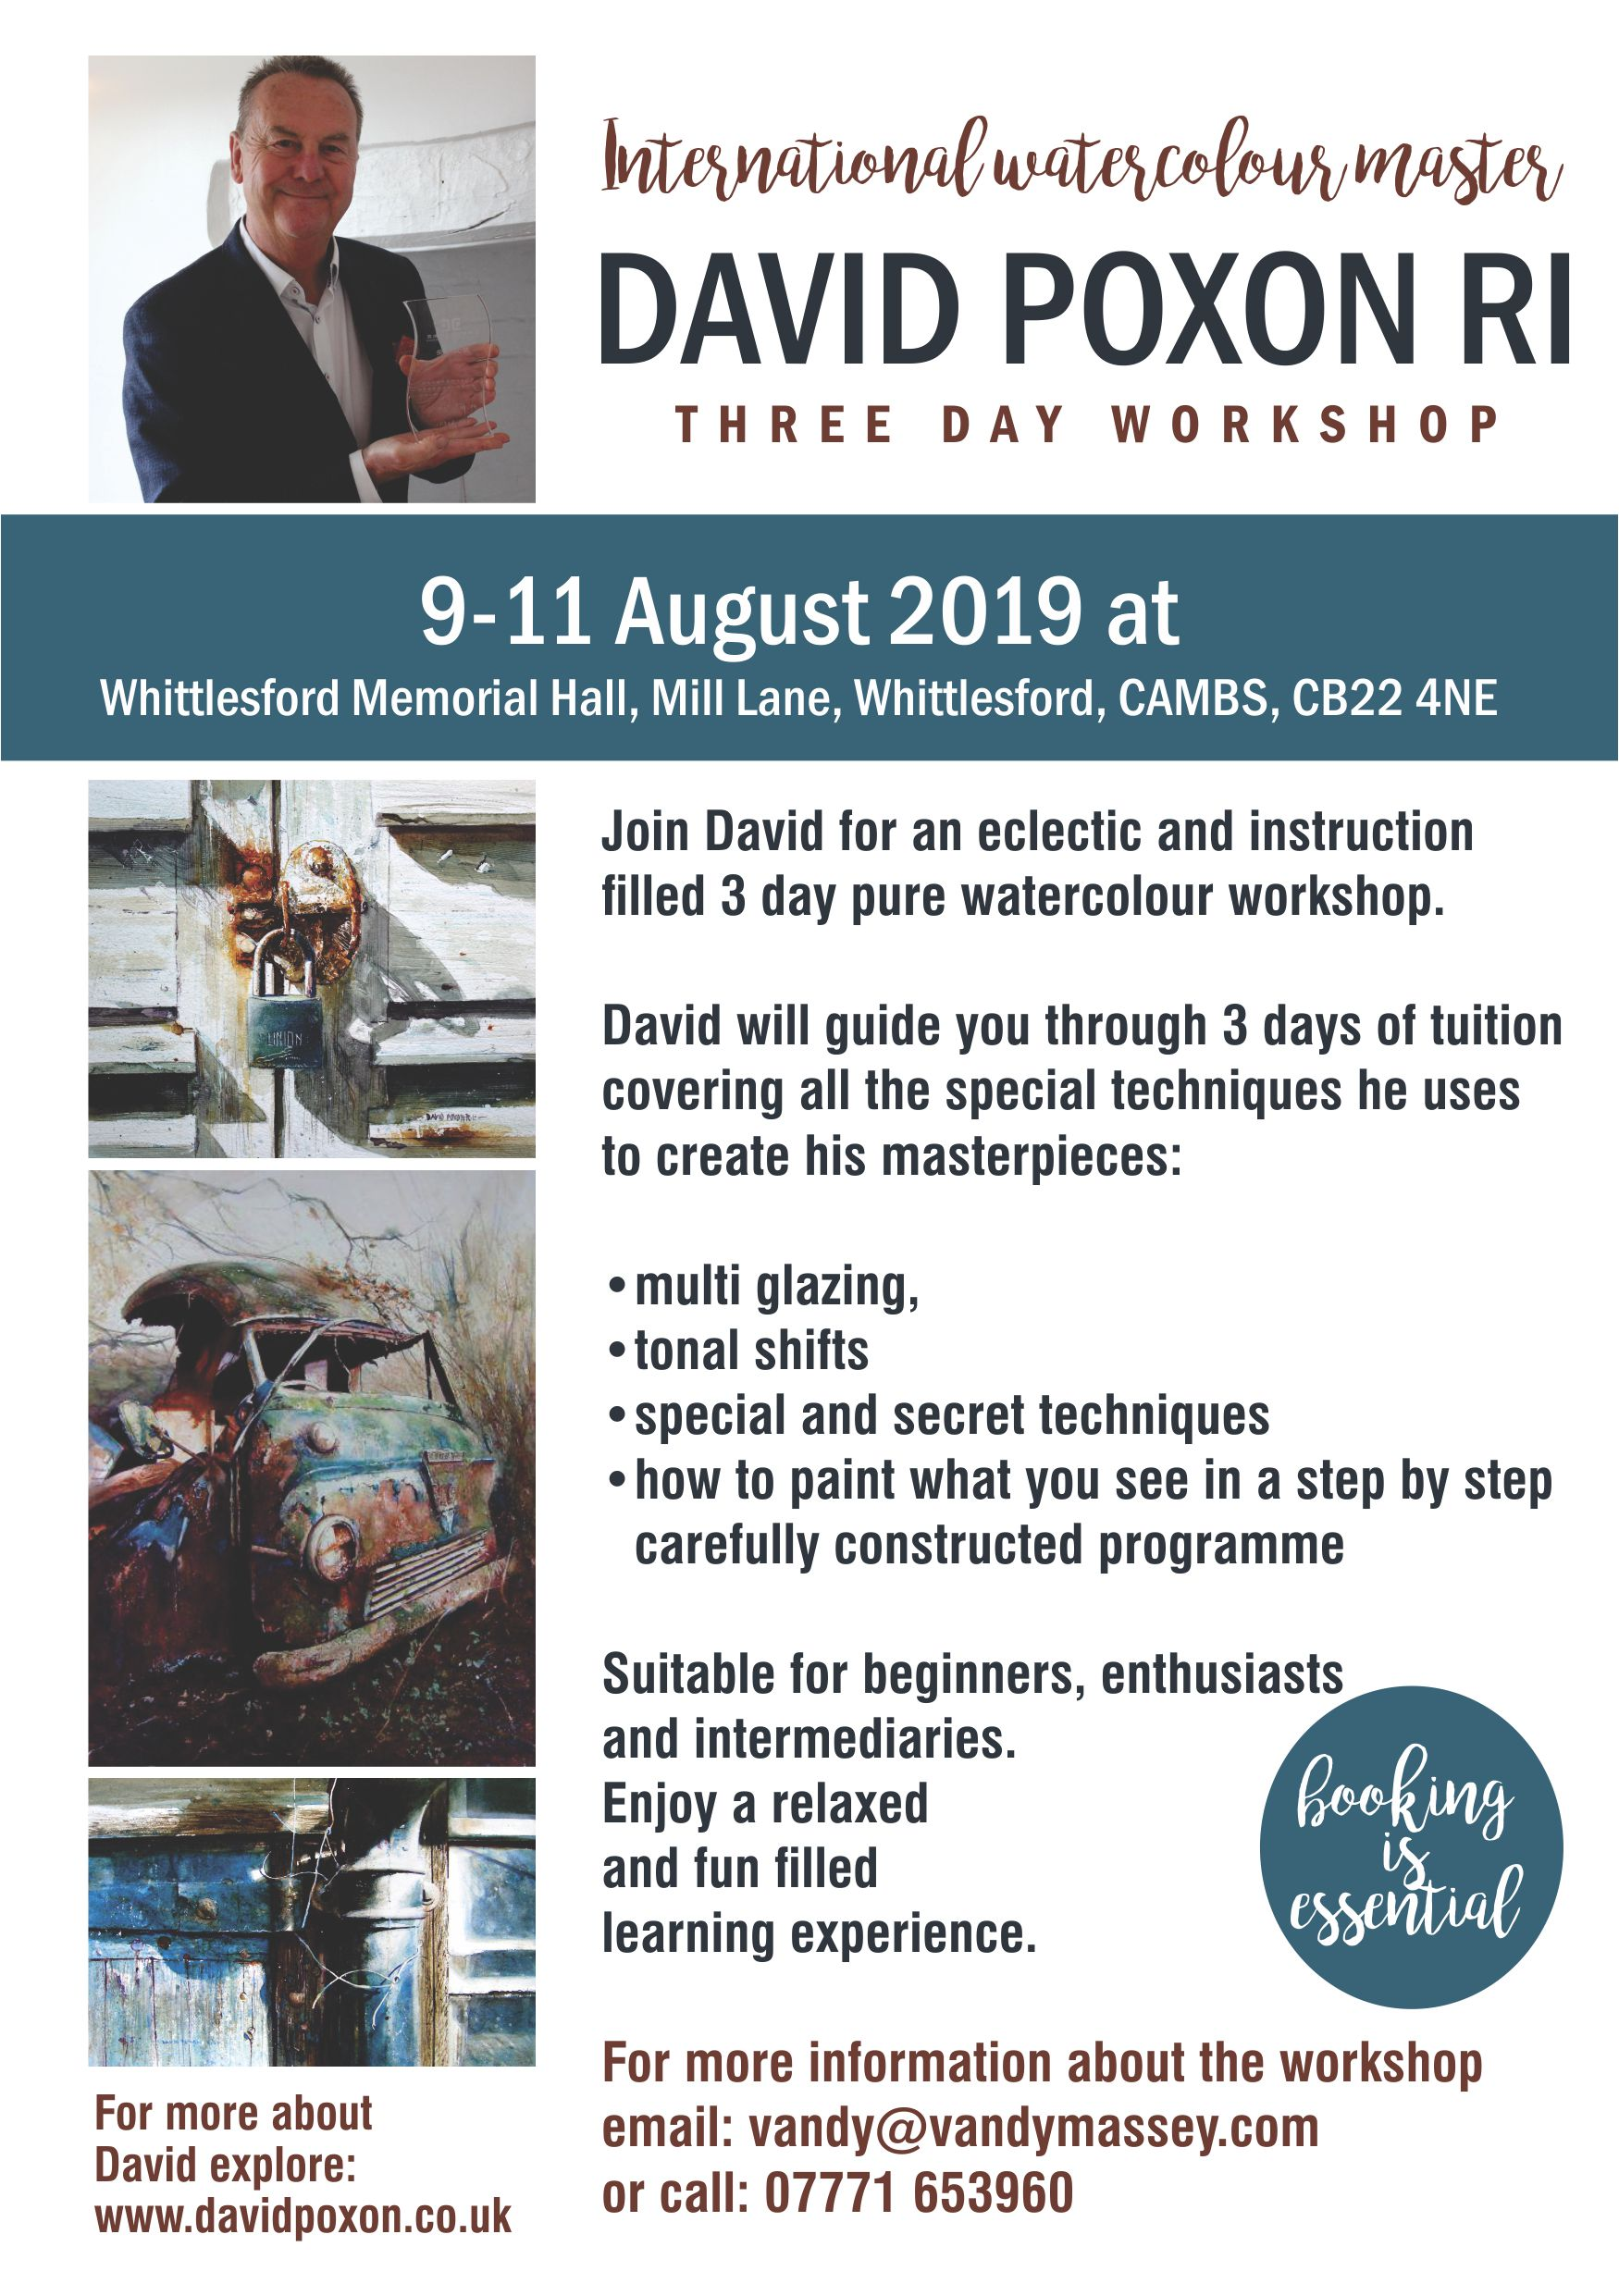 David Poxon RI Watercolour Workshop August 2019